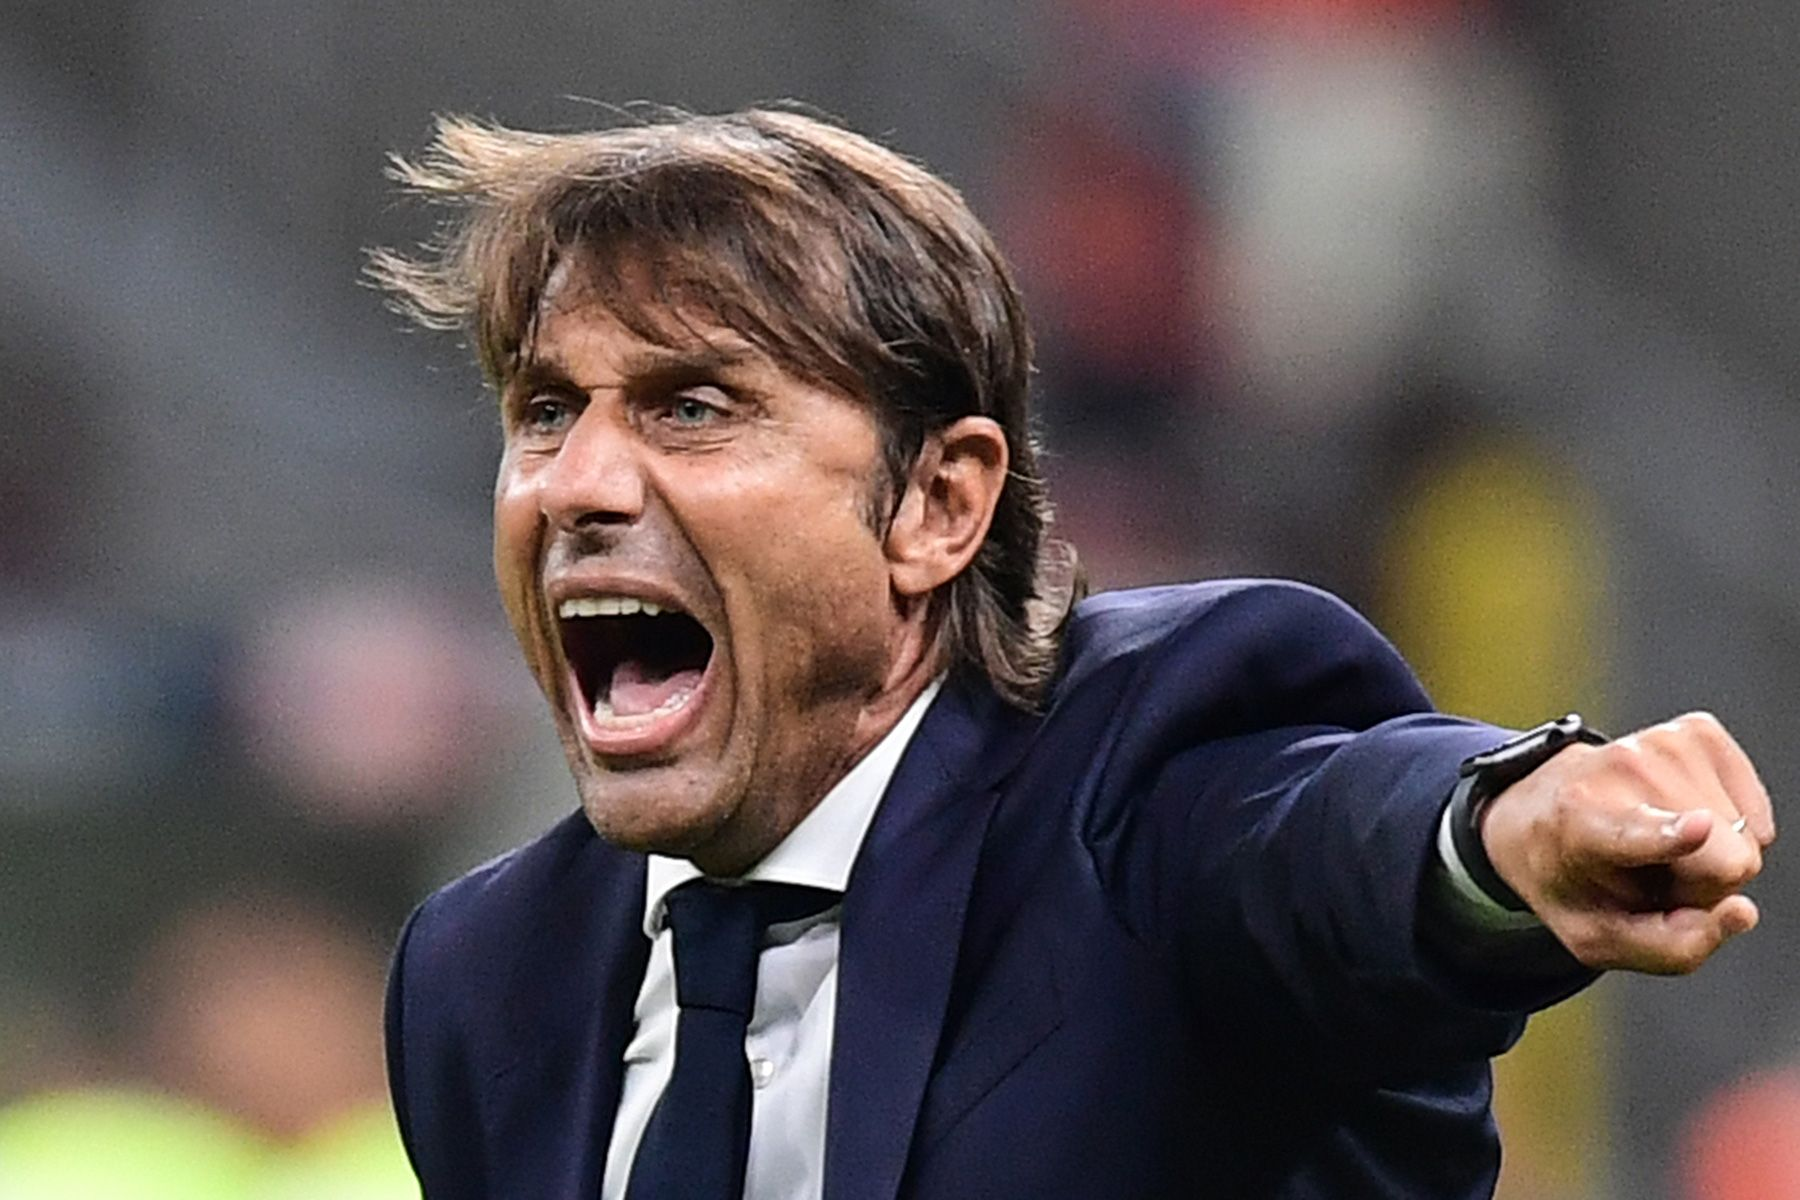 Inter inform authorities after receiving threats against Conte